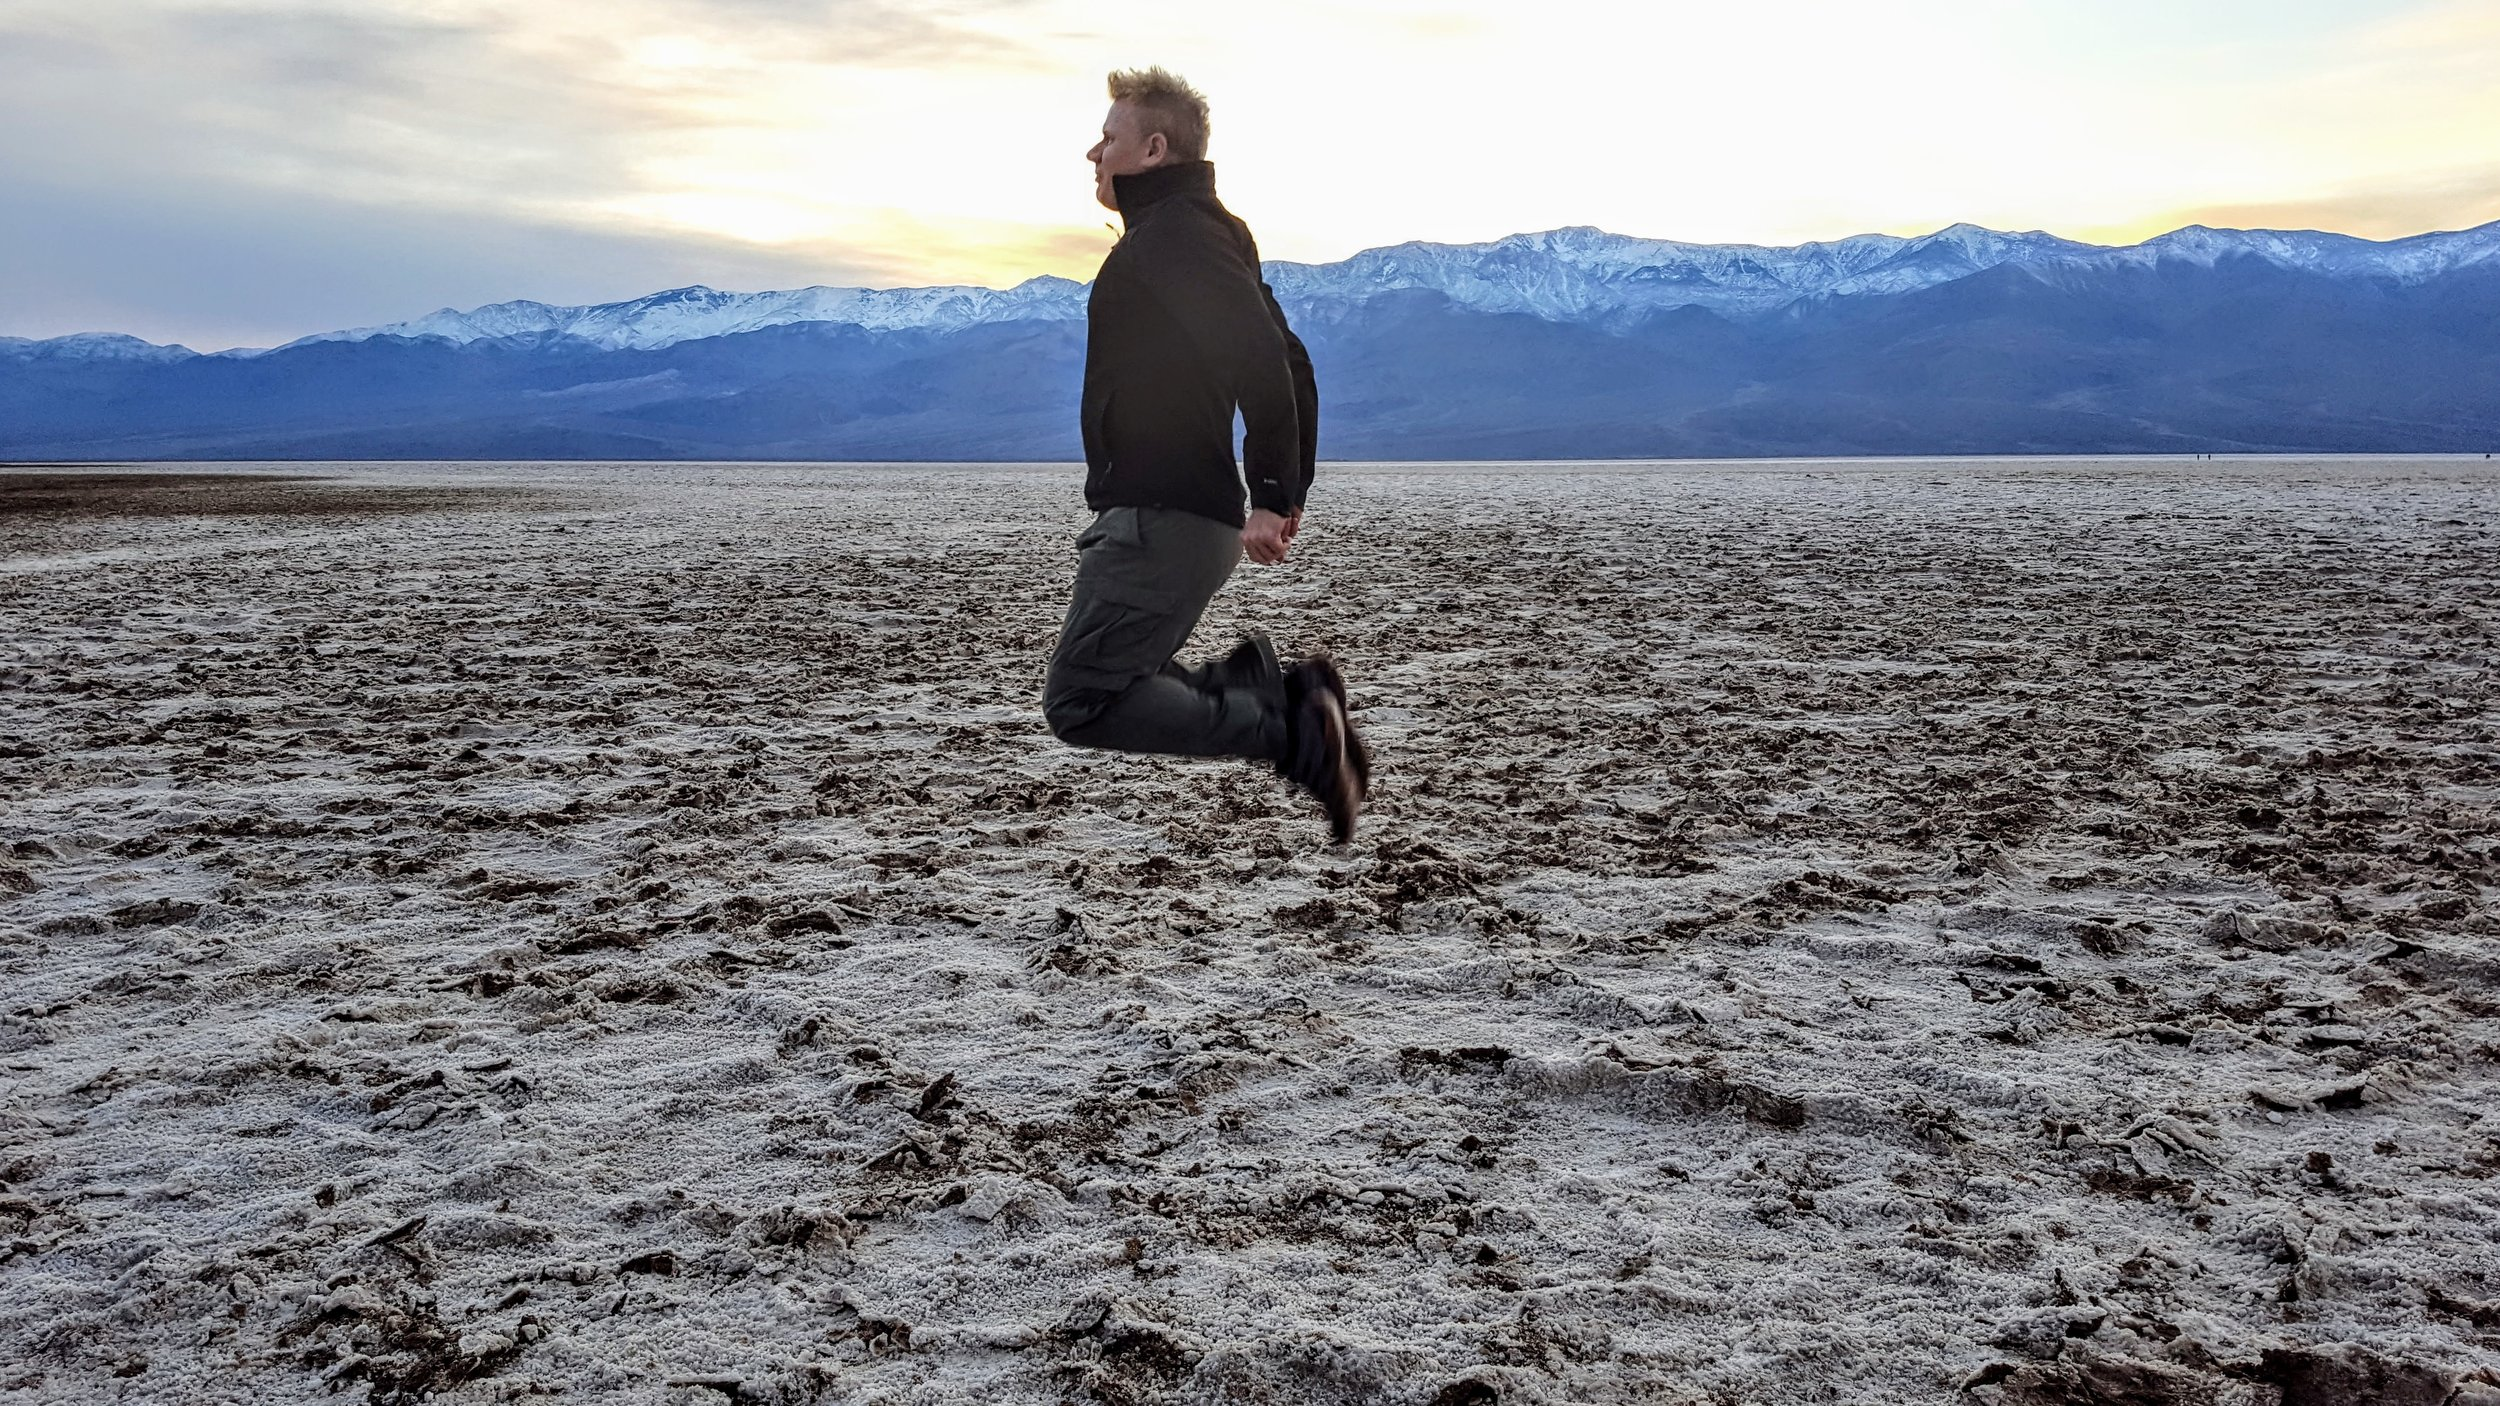 Christian, getting some air in Badwater